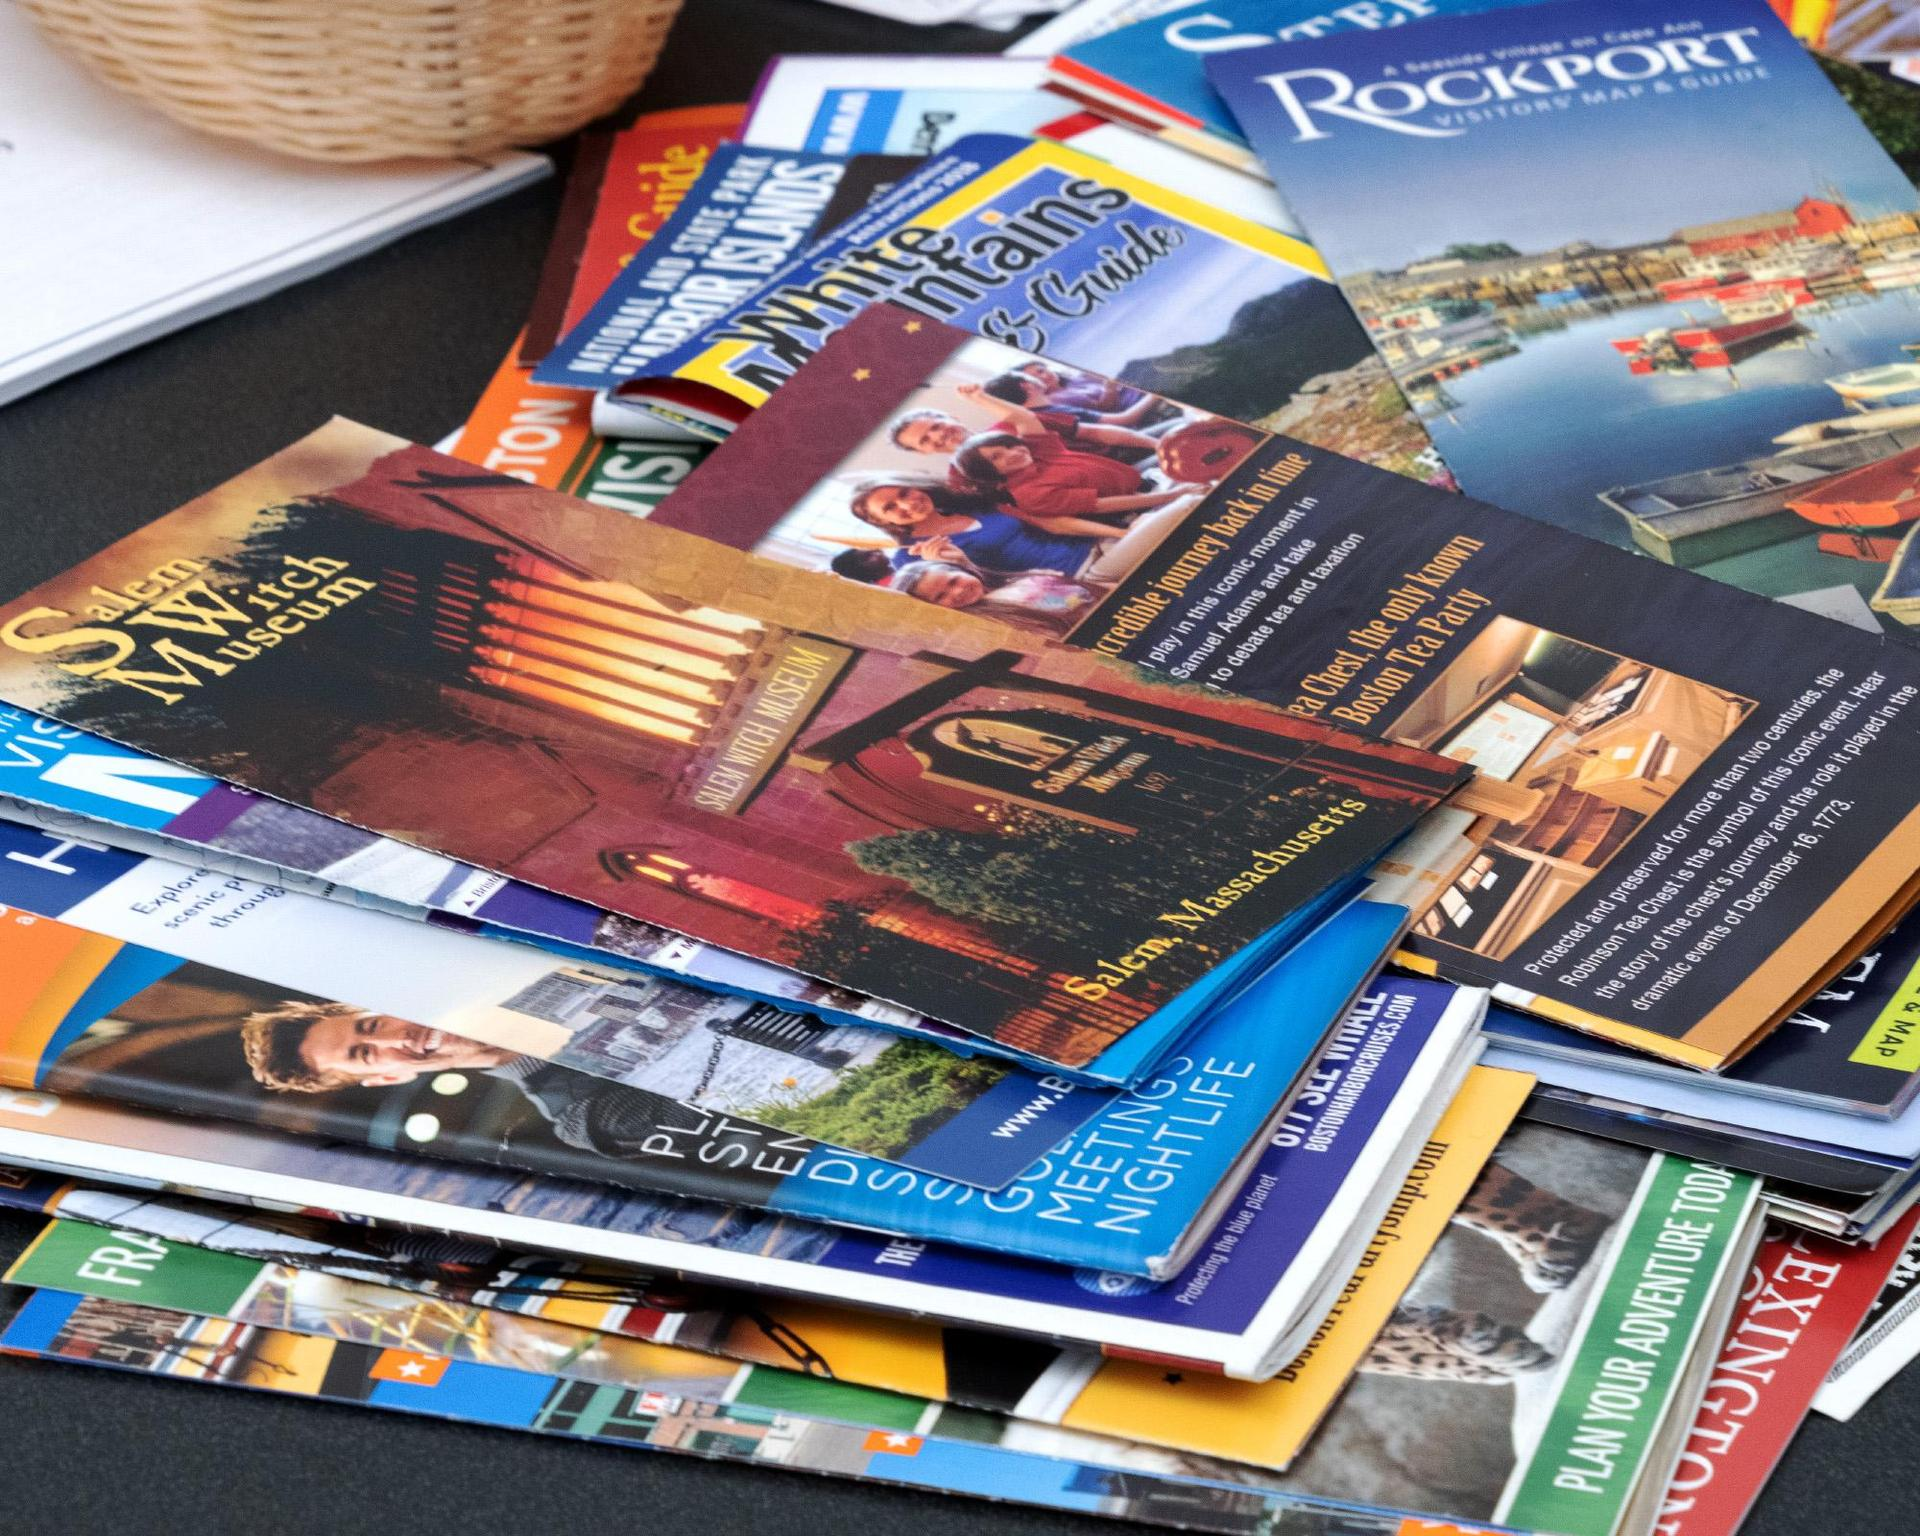 An array of tourism-related brochures